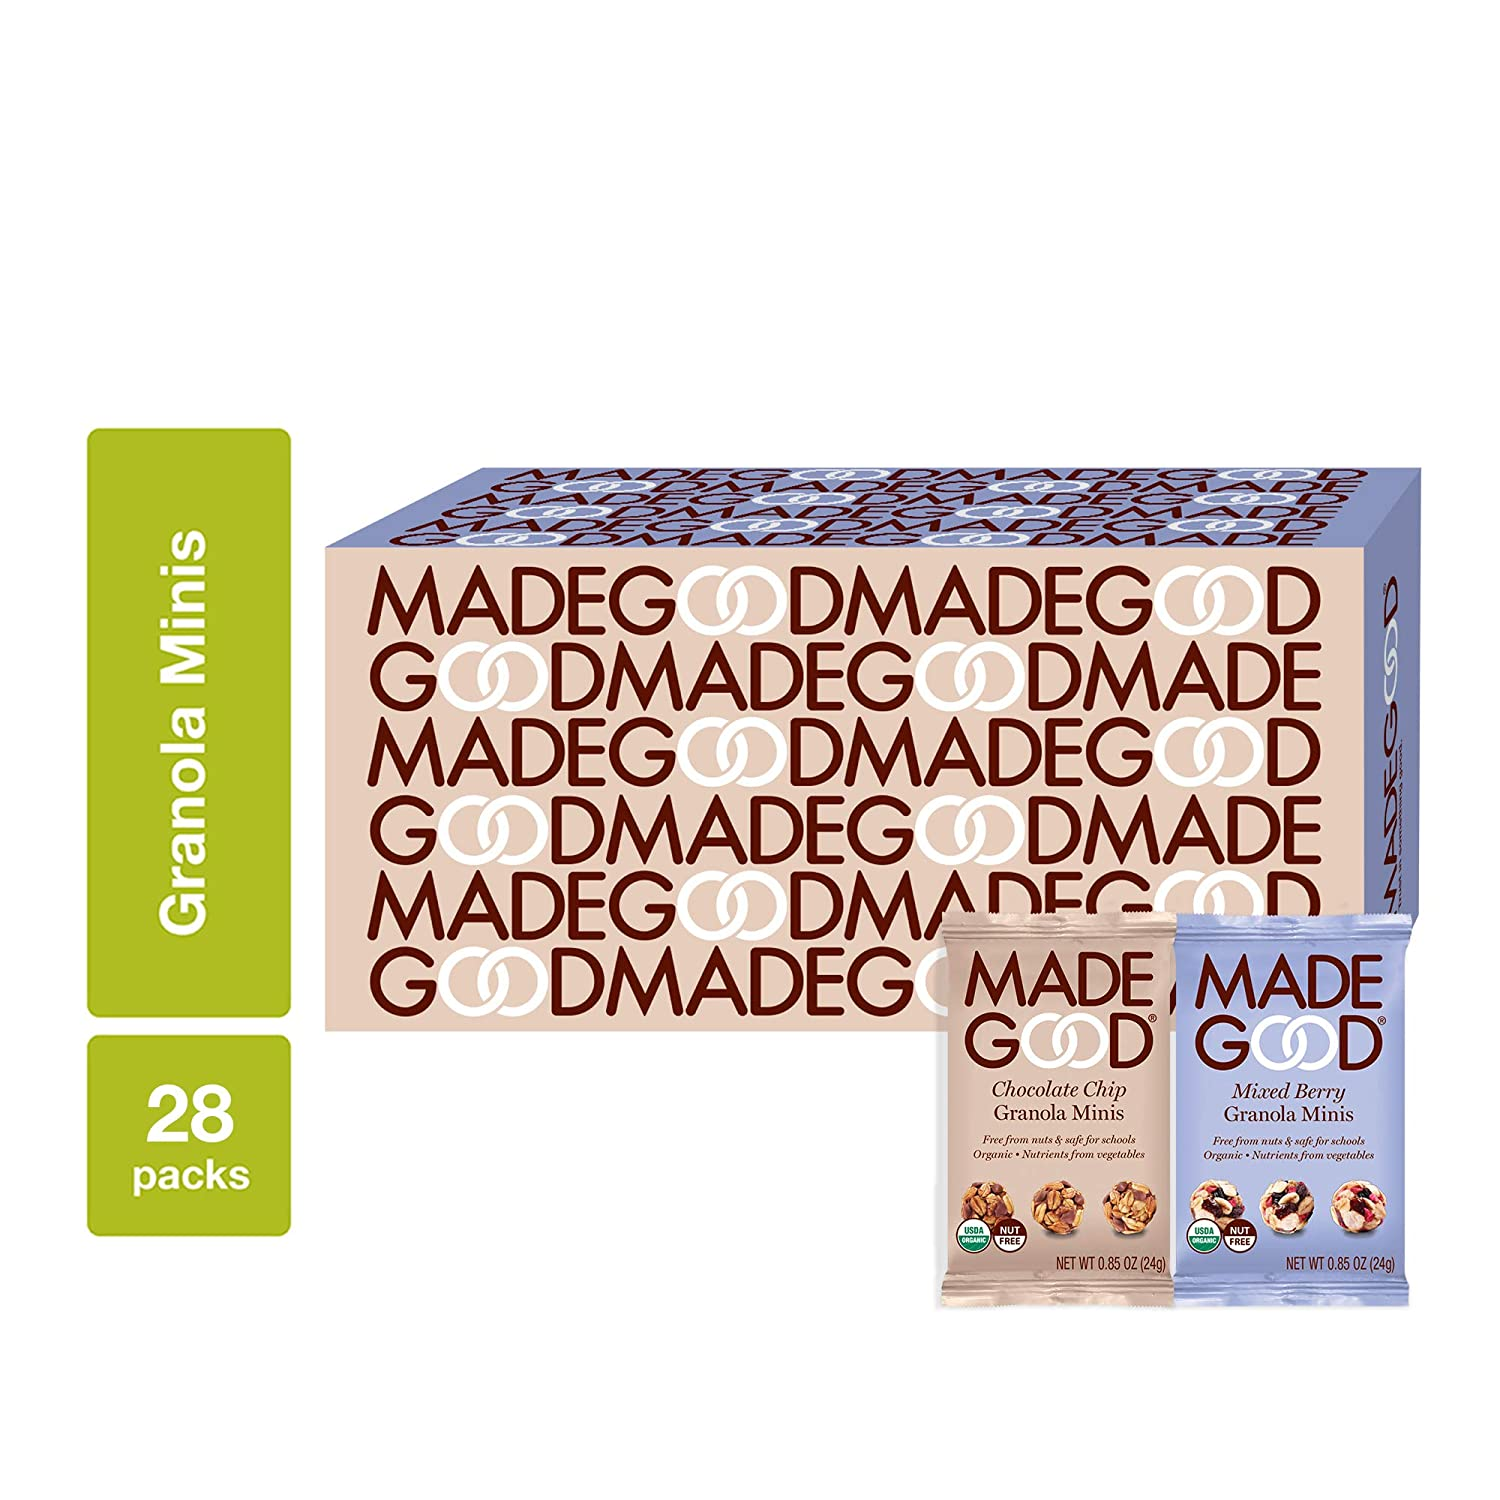 MadeGood Granola Minis 28-Bag Variety Pack, 14 Count Chocolate Chip, 14 Count Mixed Berry - Gluten Free, Vegan, Allergy-Friendly, Organic, Non-GMO Oat Snacks